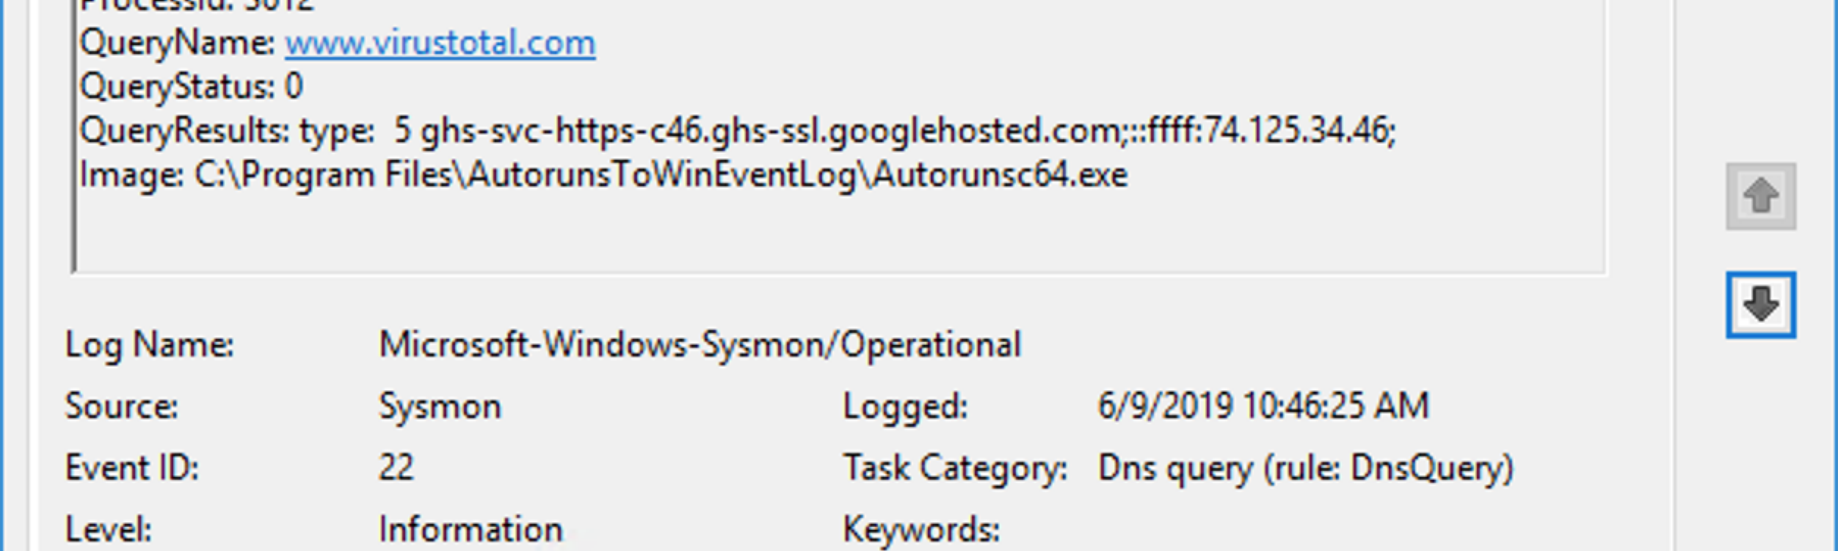 Sysmon 10 0 - New features and changes - Olaf Hartong - Medium